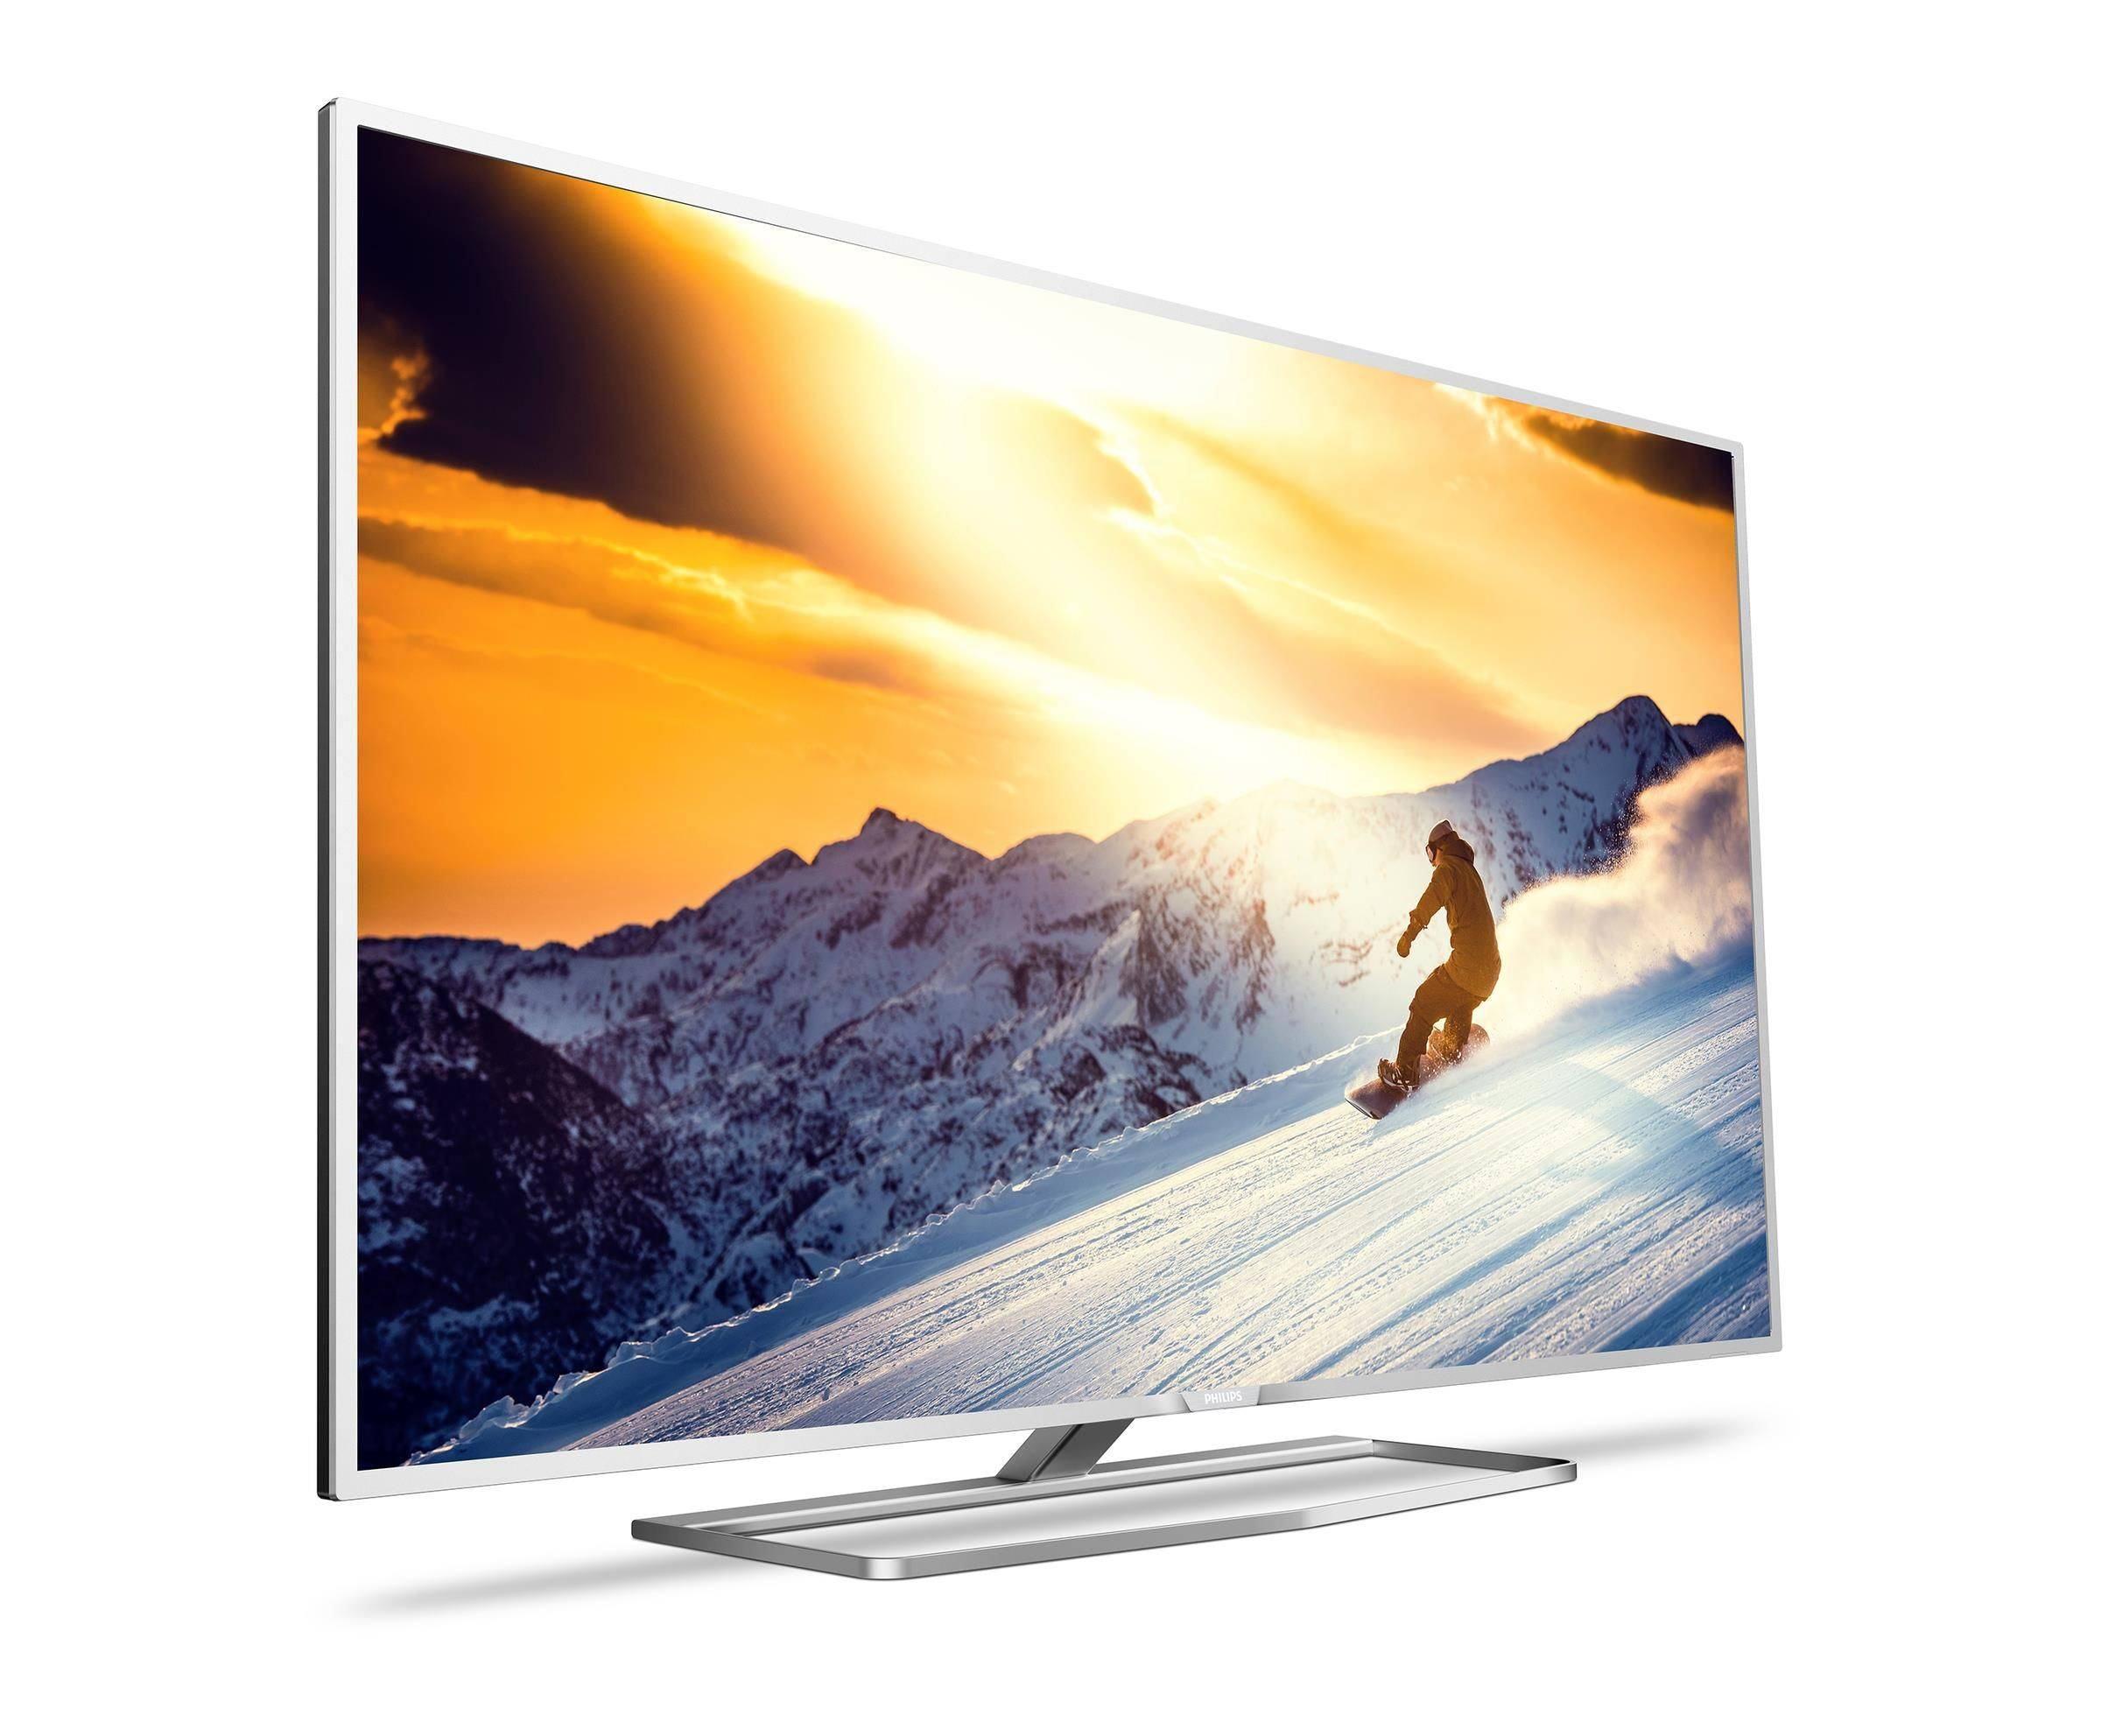 Philips Hotel tv 49'' led 1920x1080 H.265 32hfl5011t 12 16:9 10000:1 16w